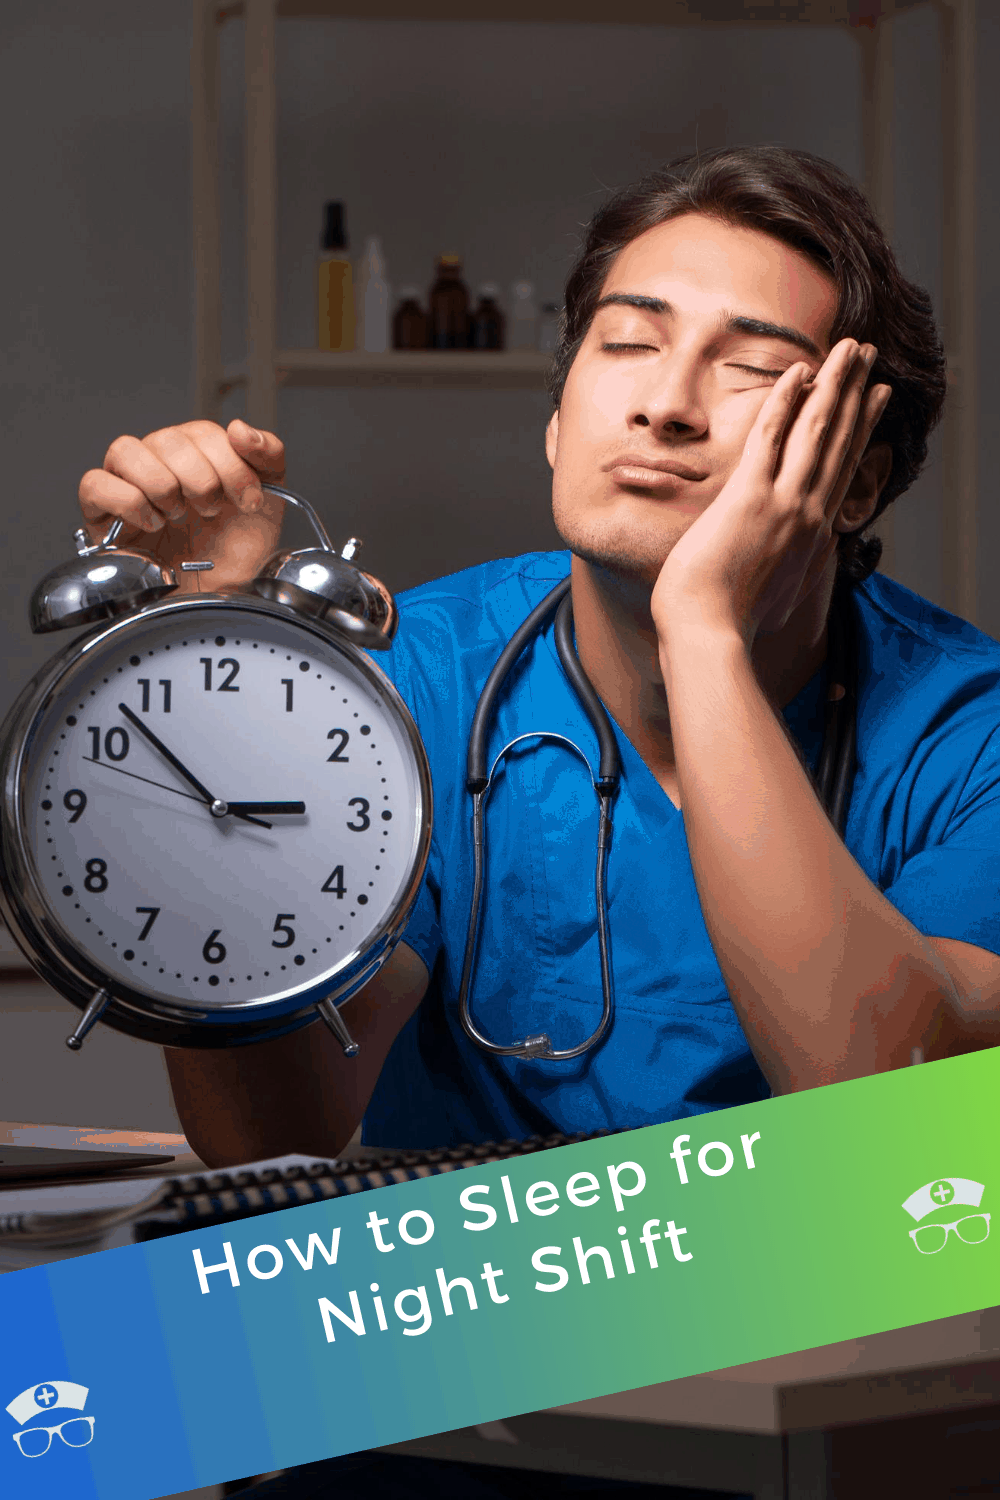 How to sleep for night shift. Wondering how to sleep for night shift? These tips show you how to fall asleep fast and make your night shift sleep schedule work for you. #thenerdynurse #nurse #nurses #nightshift #sleep #sleeping #tipsfornurses #nursetips